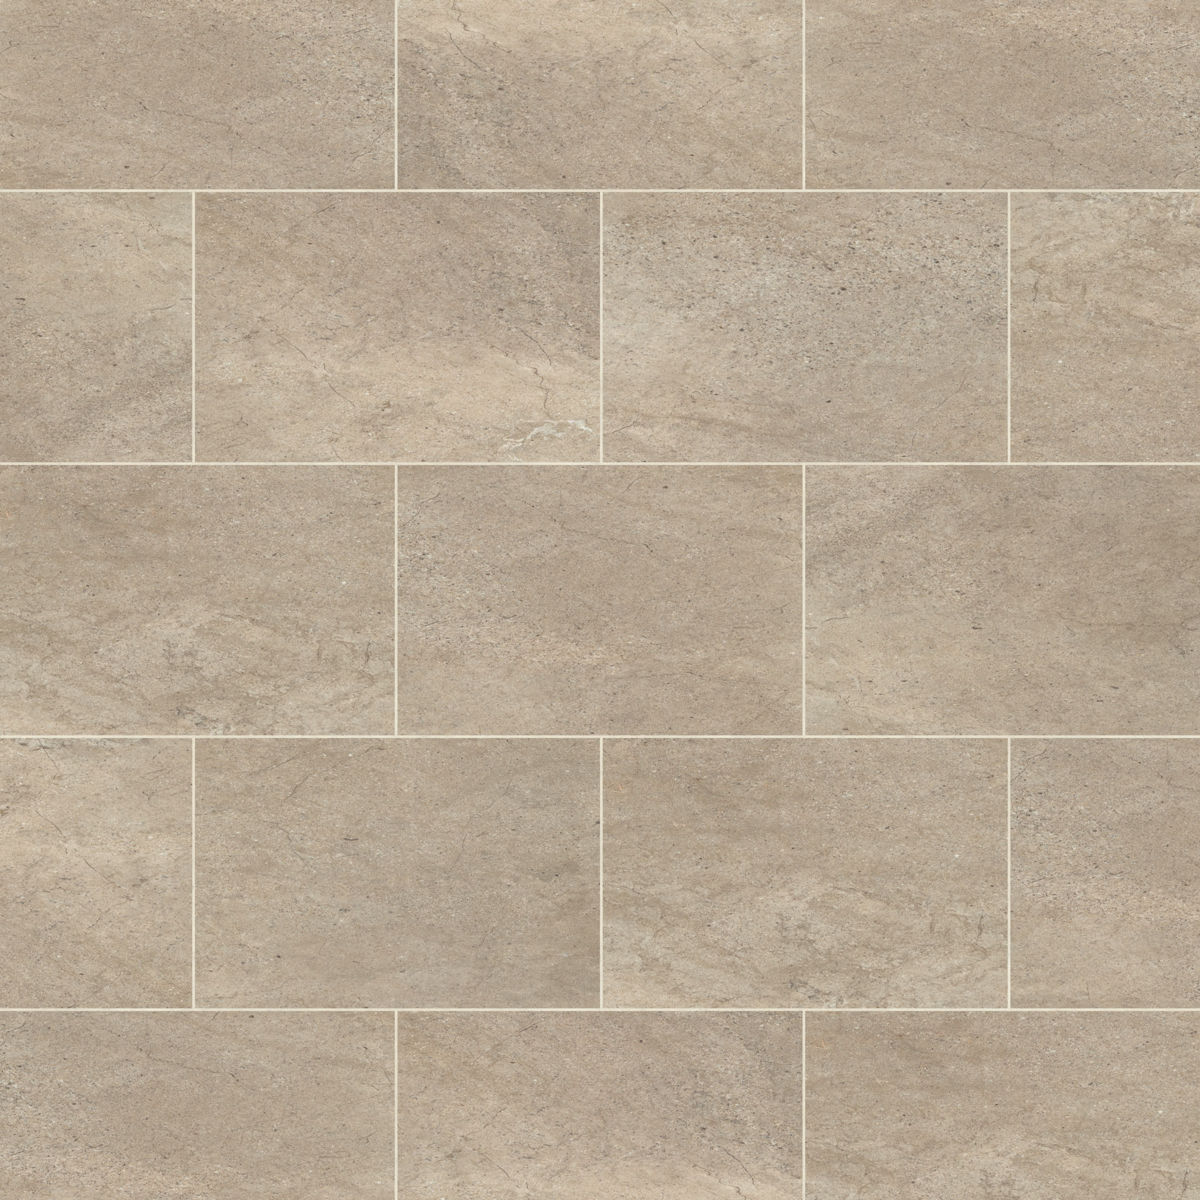 b stick in x floor brown shades peel wall the stone mosaic flooring tan and ekb travertine n depot instant home tile natural